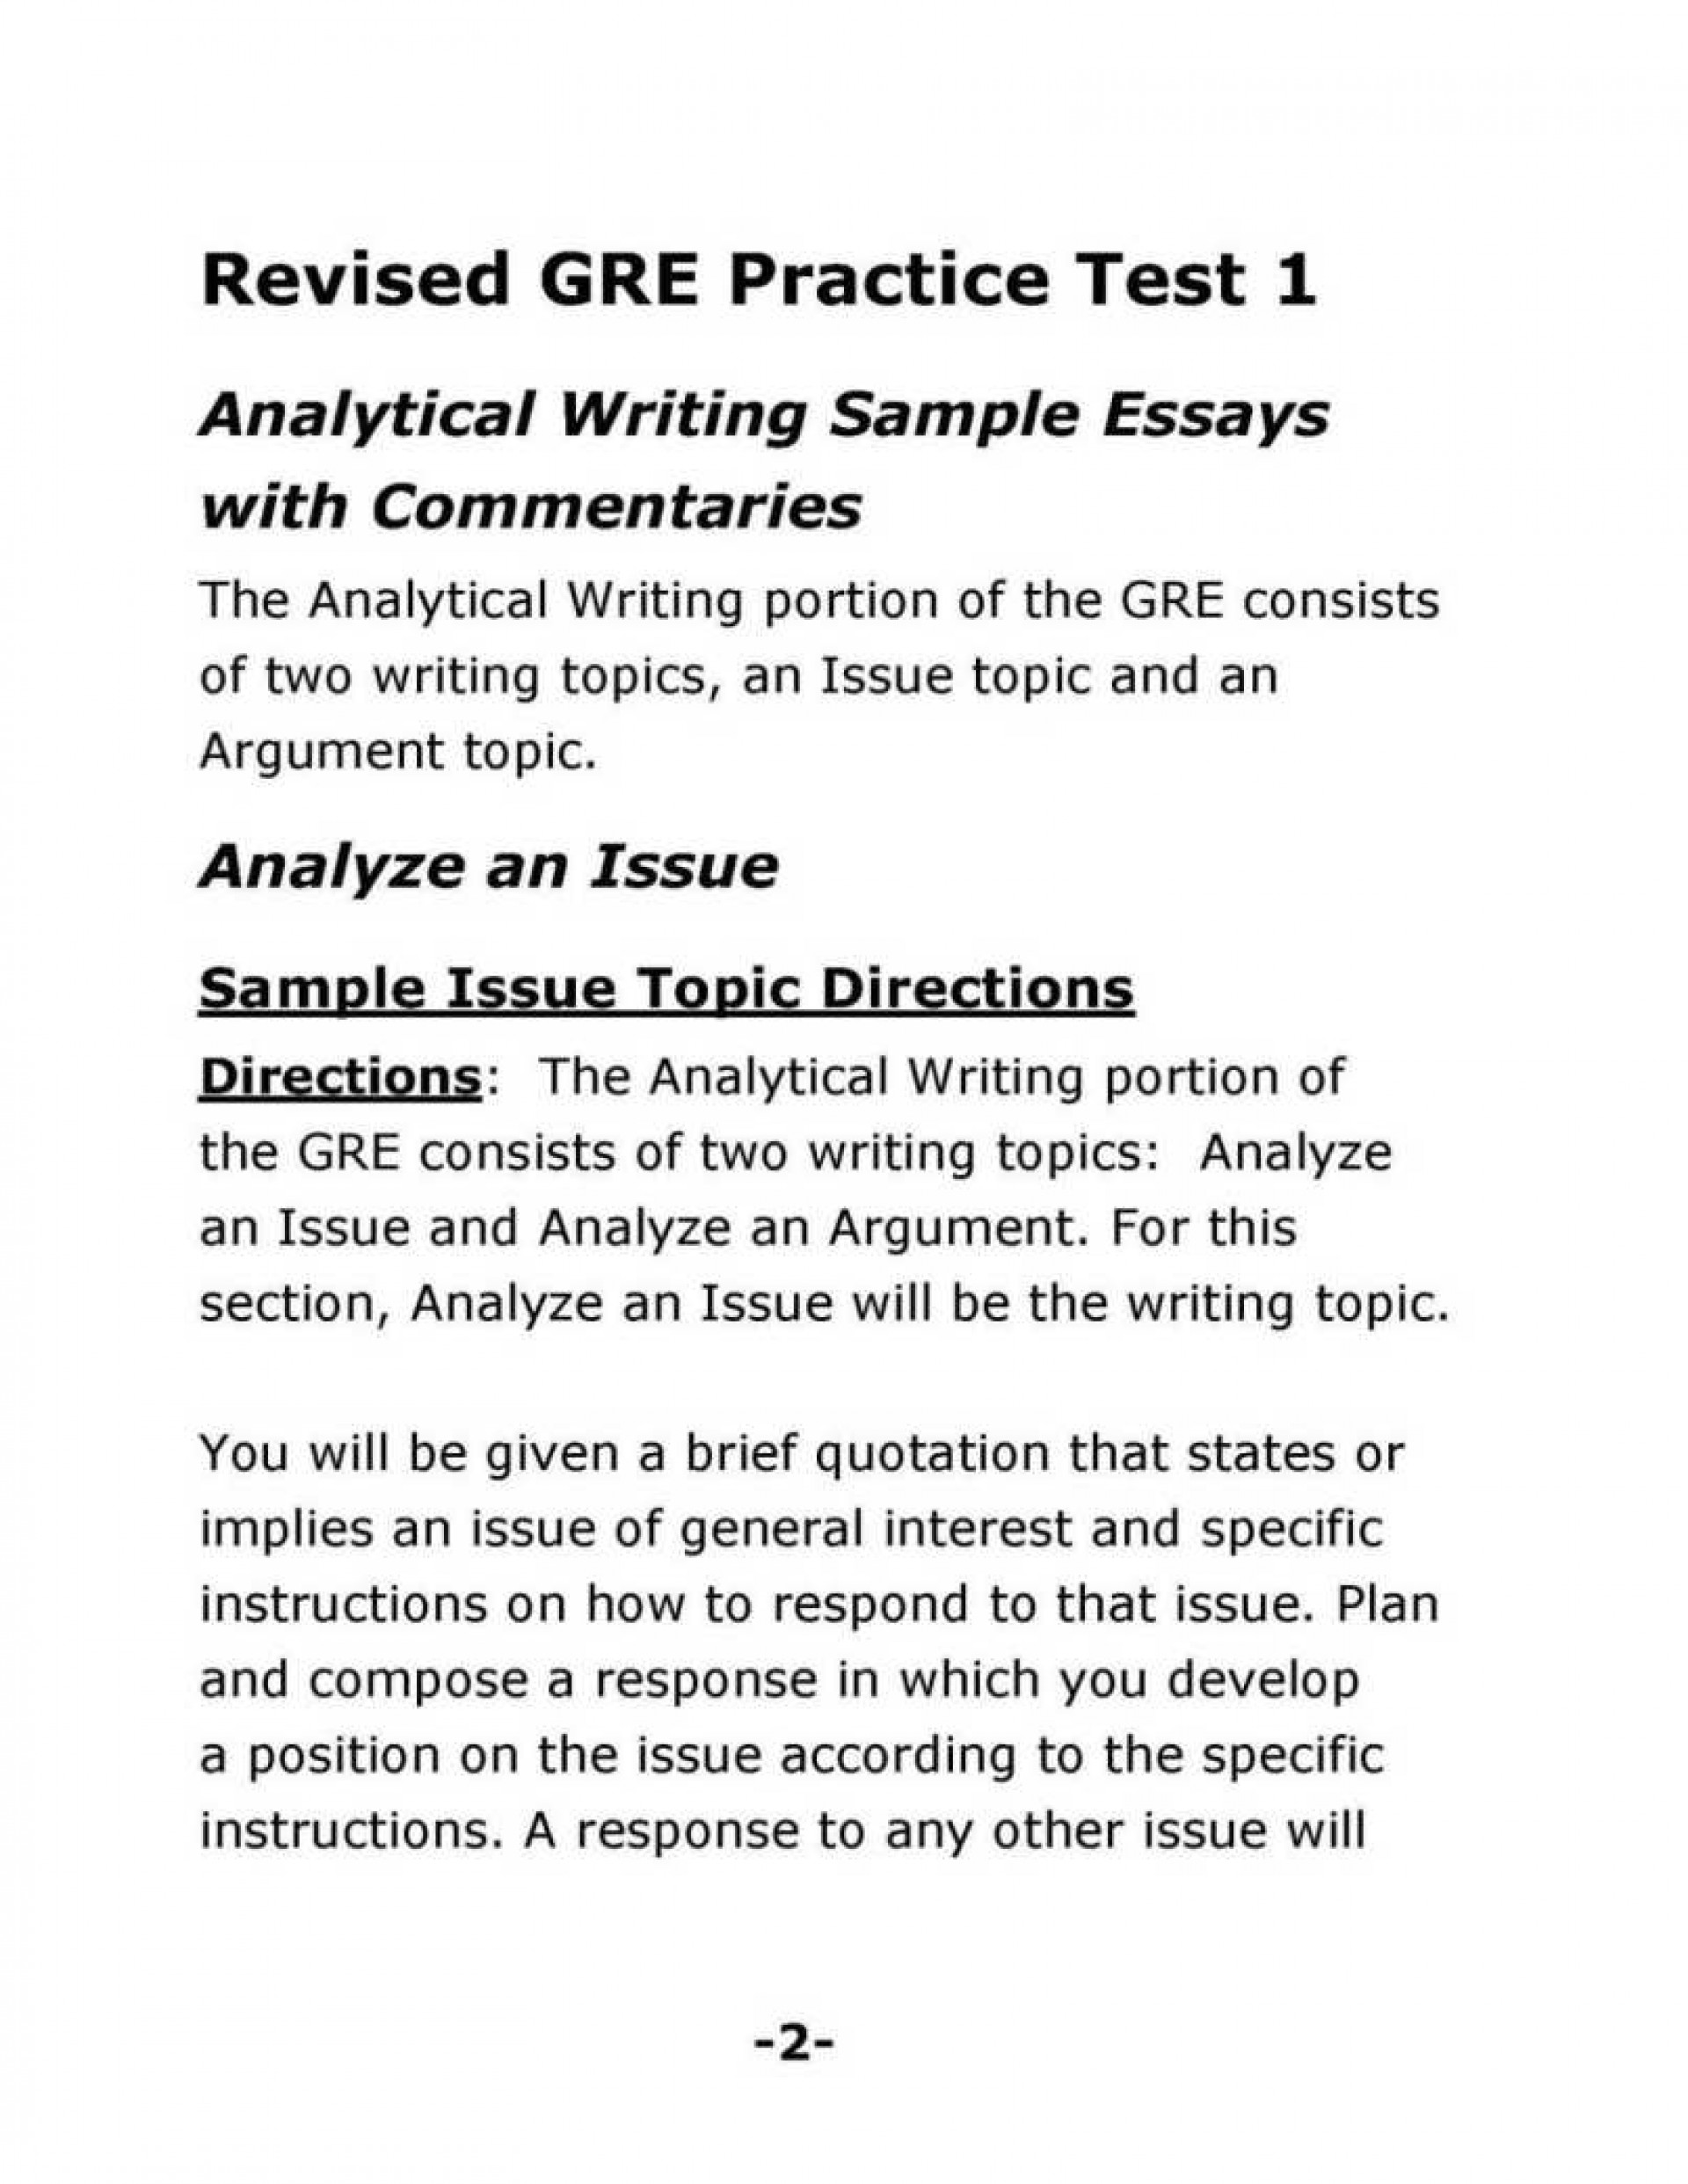 013 How To Write Gre Argument Essay Formatted Resume Example Sample Test Papers With Soluti Good Essays Great Issue Perfect Analytical Writing Better Sensational Samples Ets Solution 1920